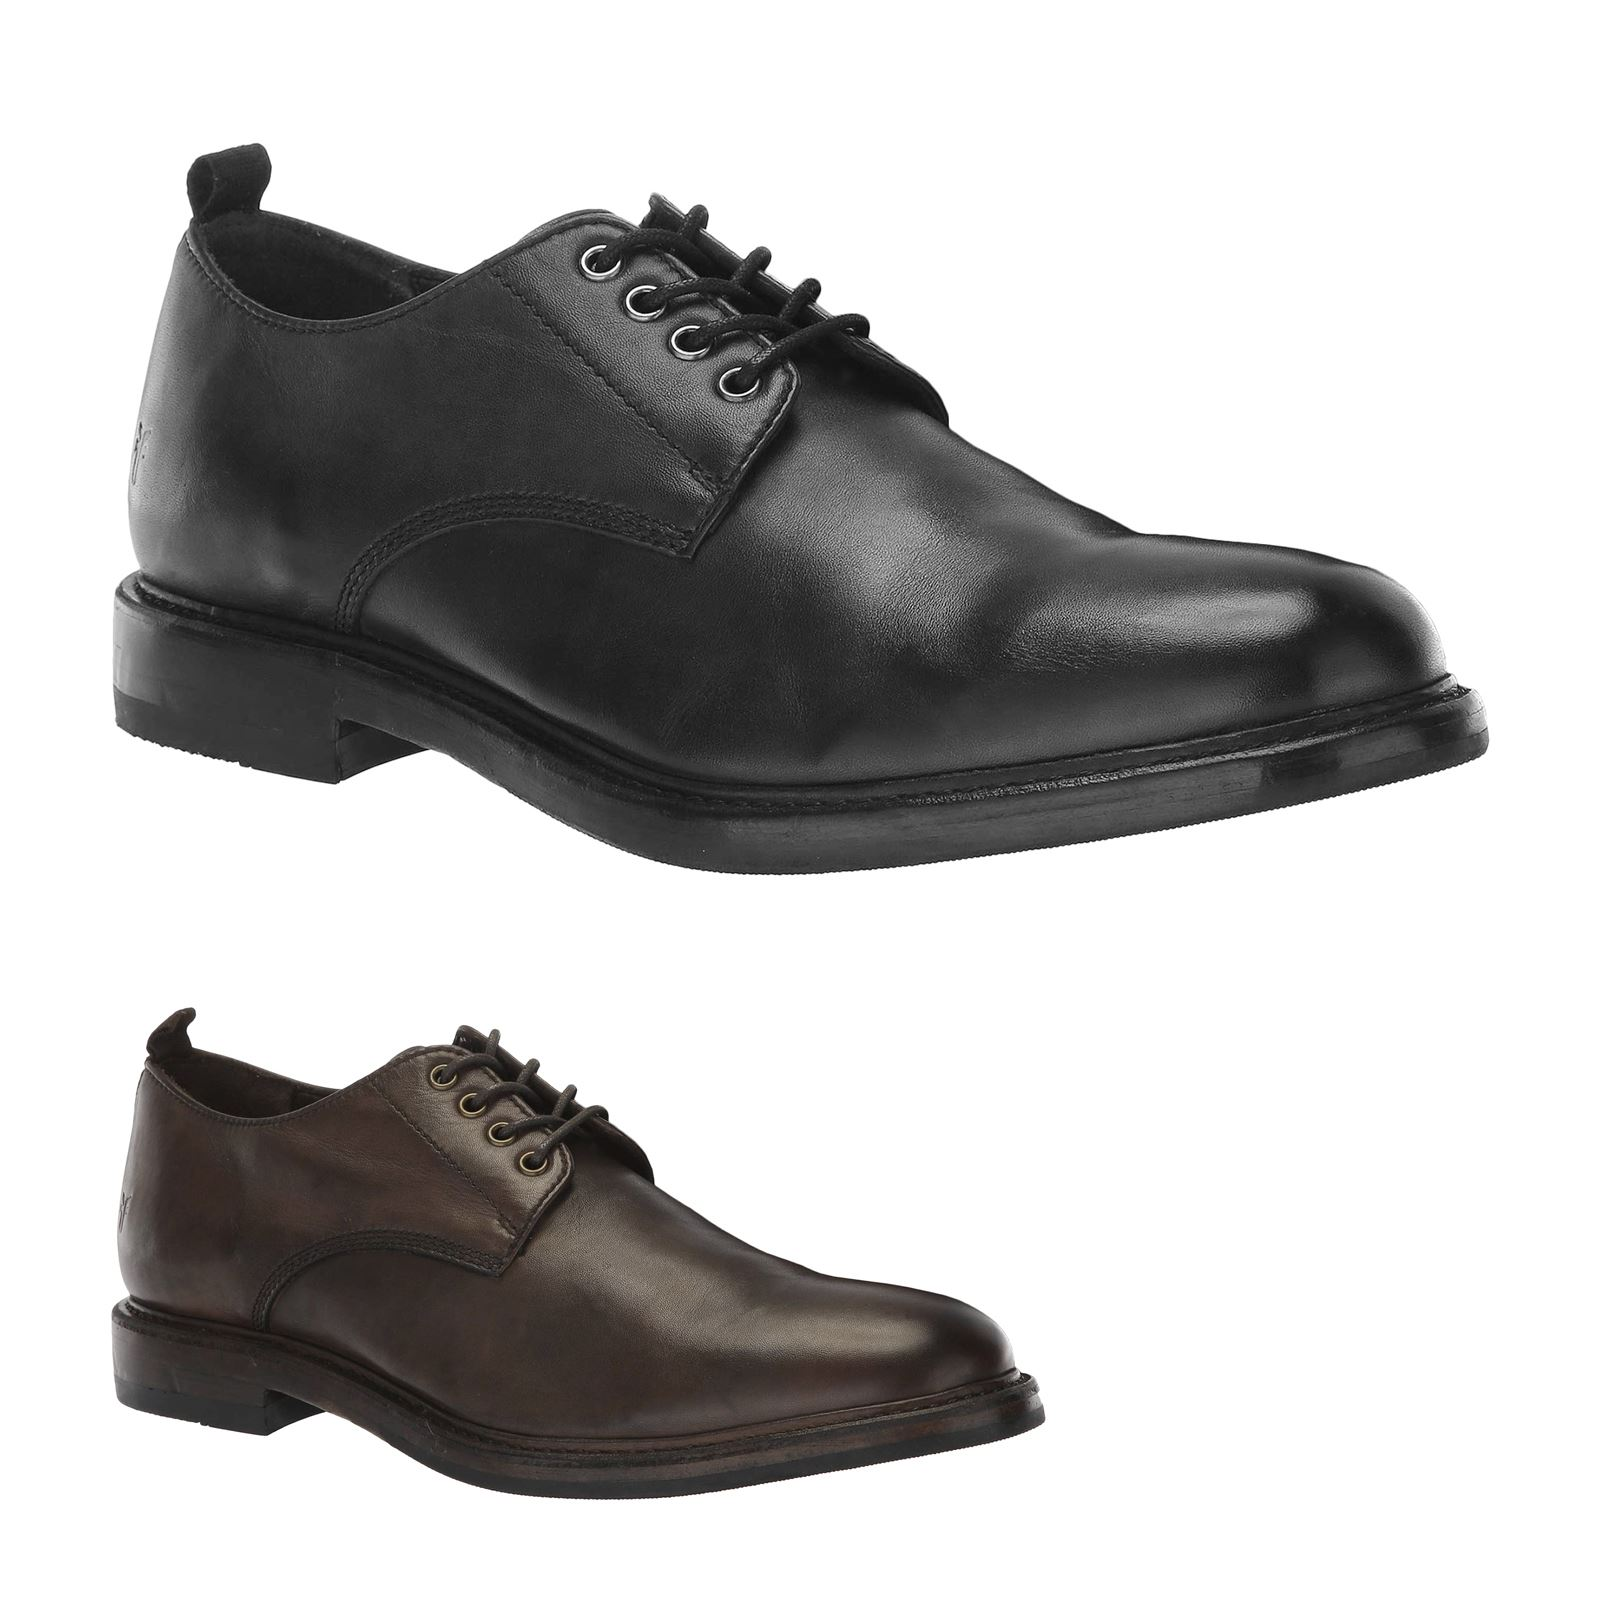 45d2dd9016d Details about Frye Murray Oxford Leather Casual Low-Profile Lace-Up Mens  Shoes